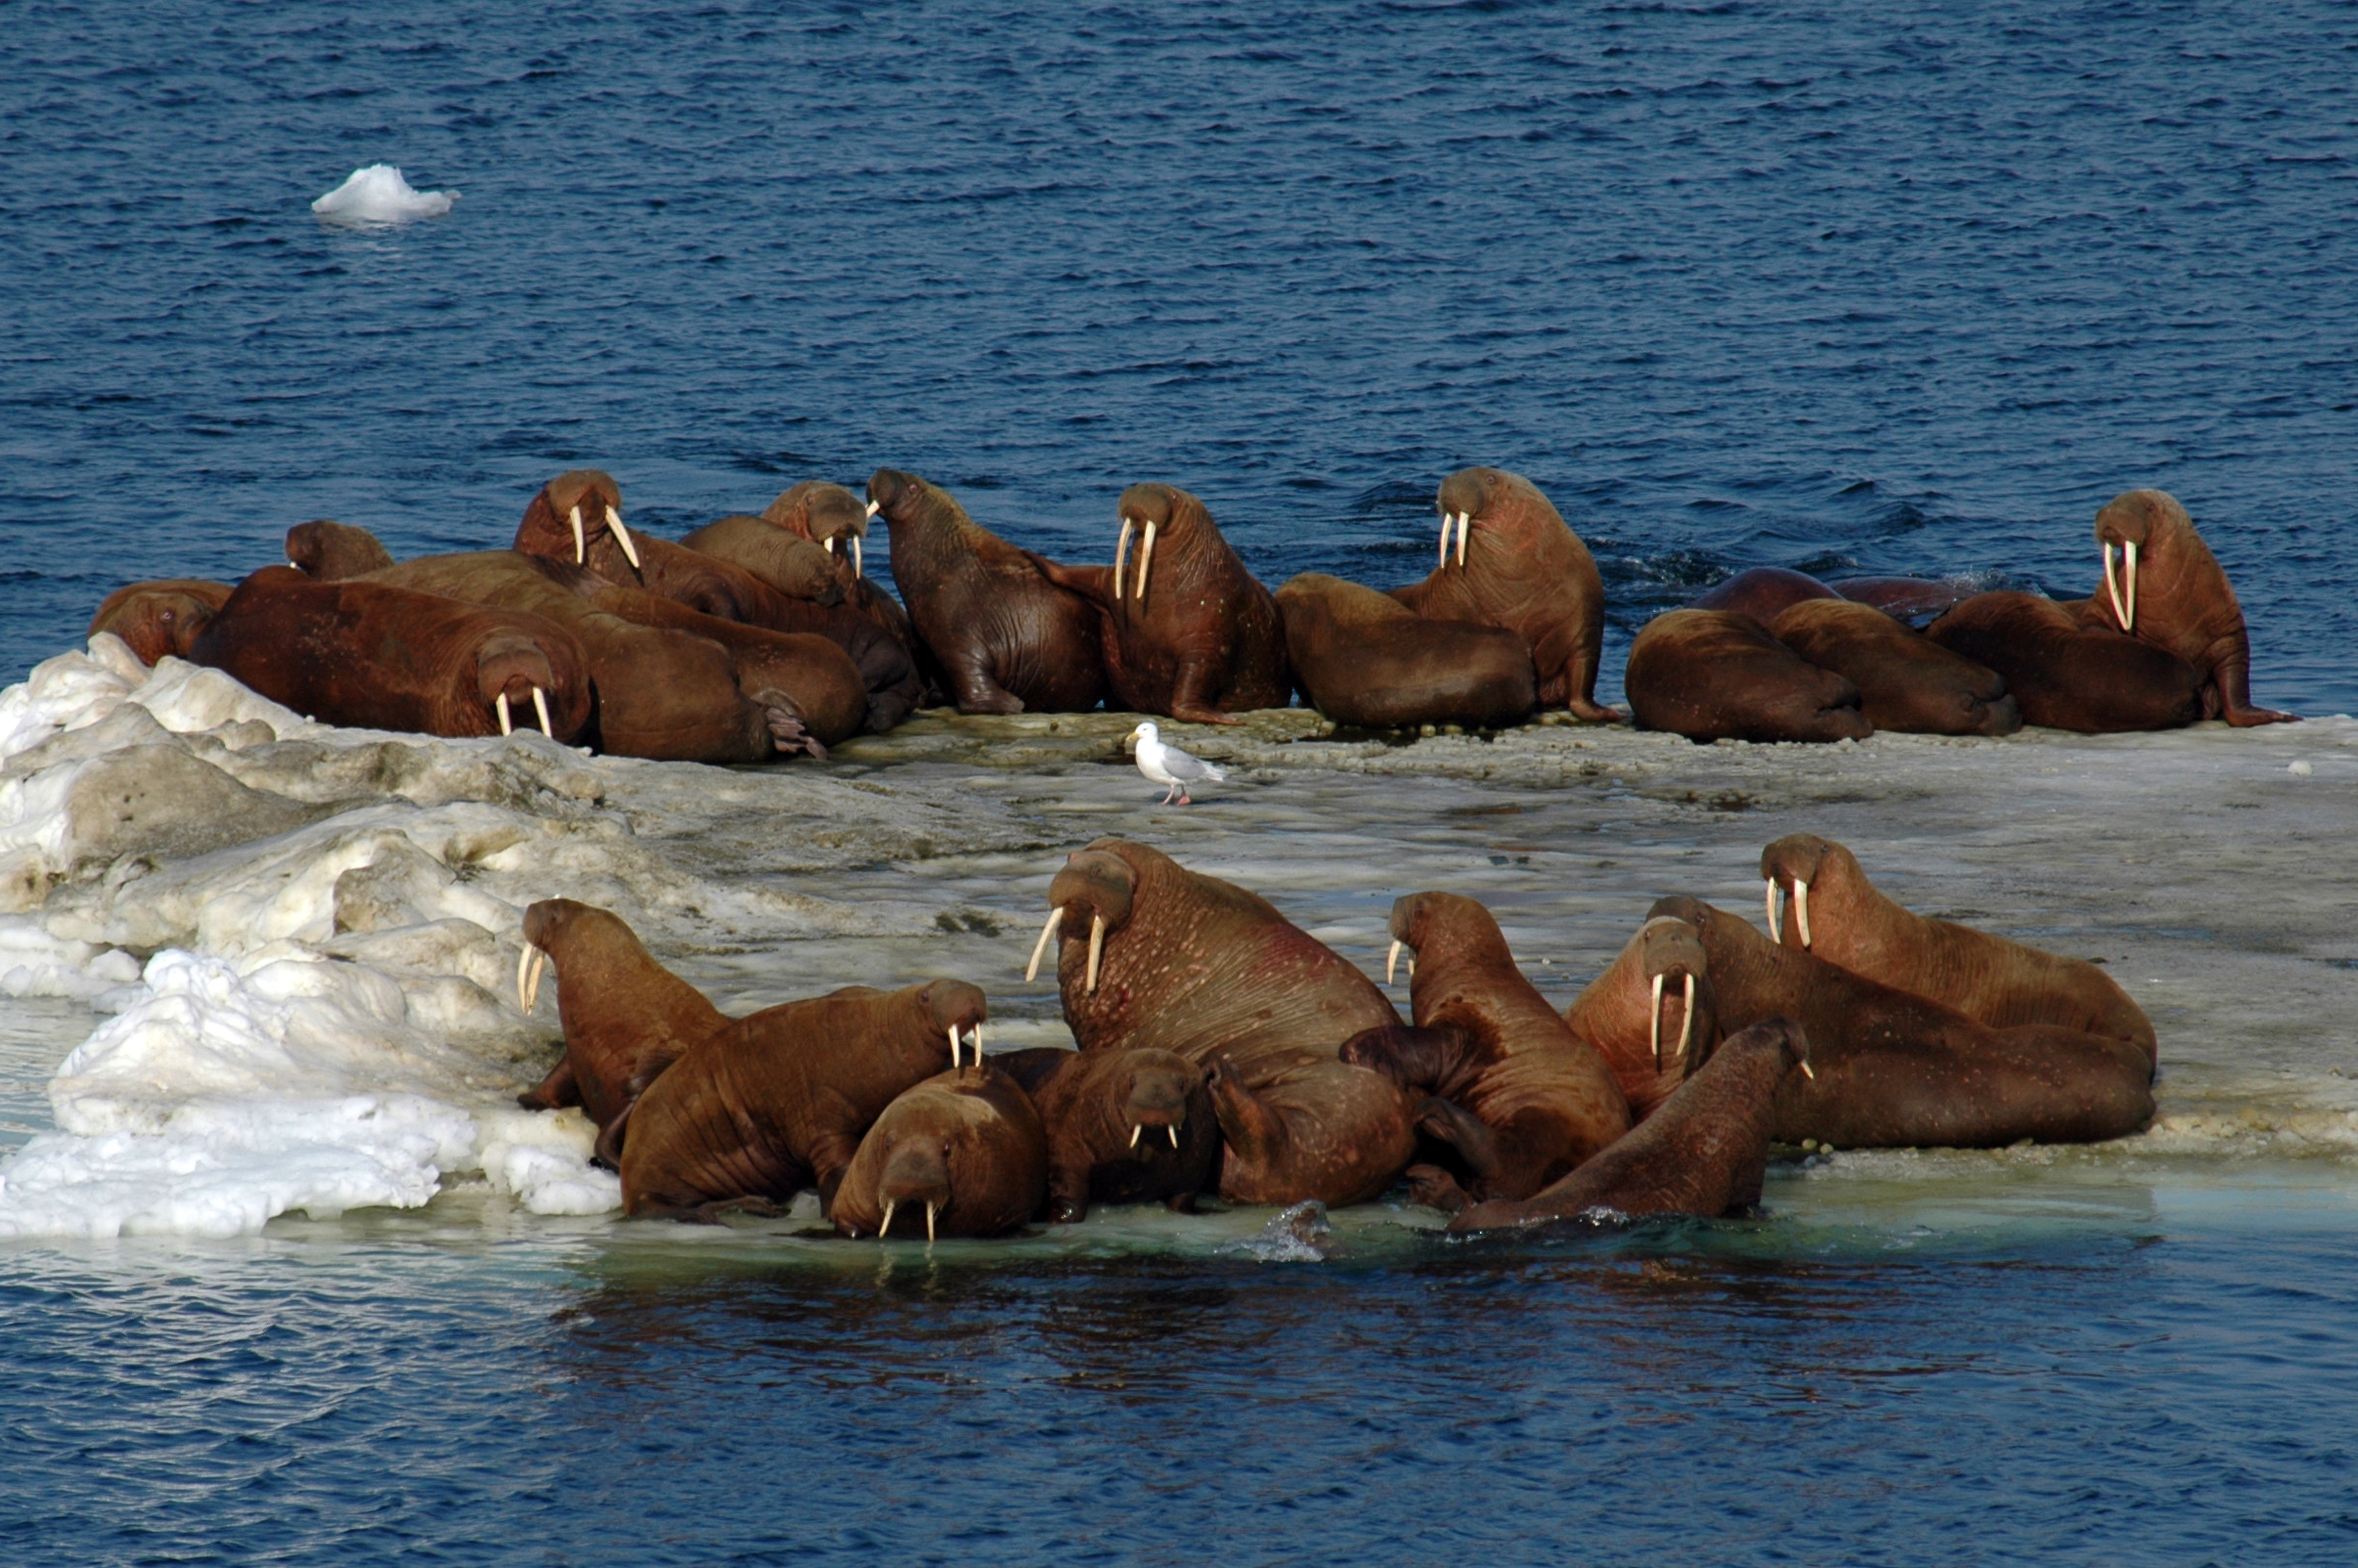 Declining Arctic sea ice impacts walrus herds, which use the ice for hunting,resting, mating and raising young. The report details the complex outlook for this species Photo: Karen Frey, Clark University